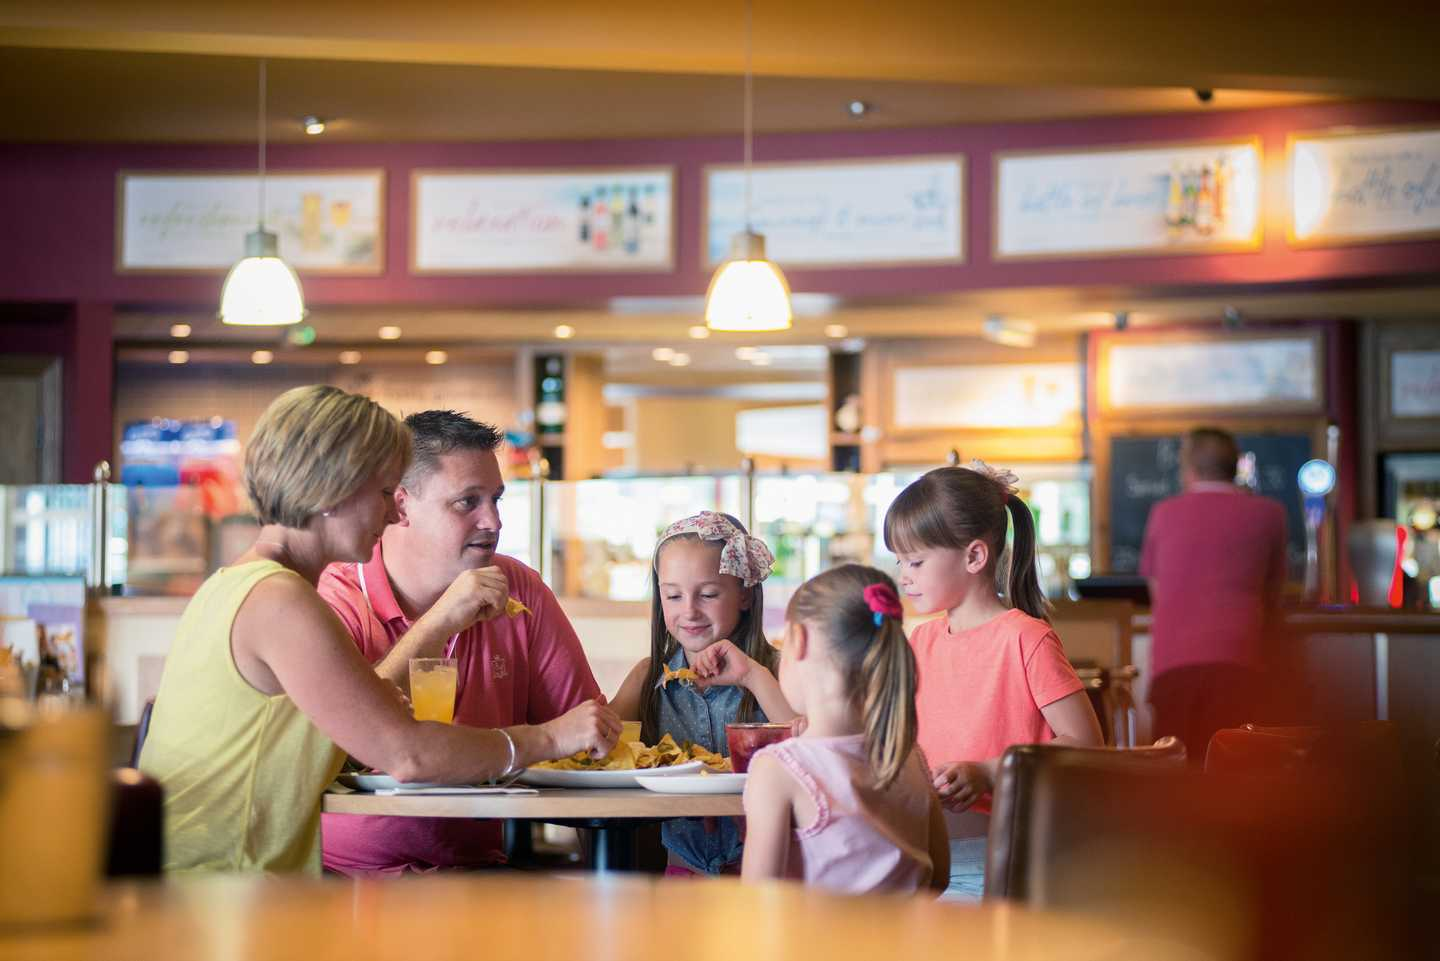 A family eating at the Mash and Barrel restaurant